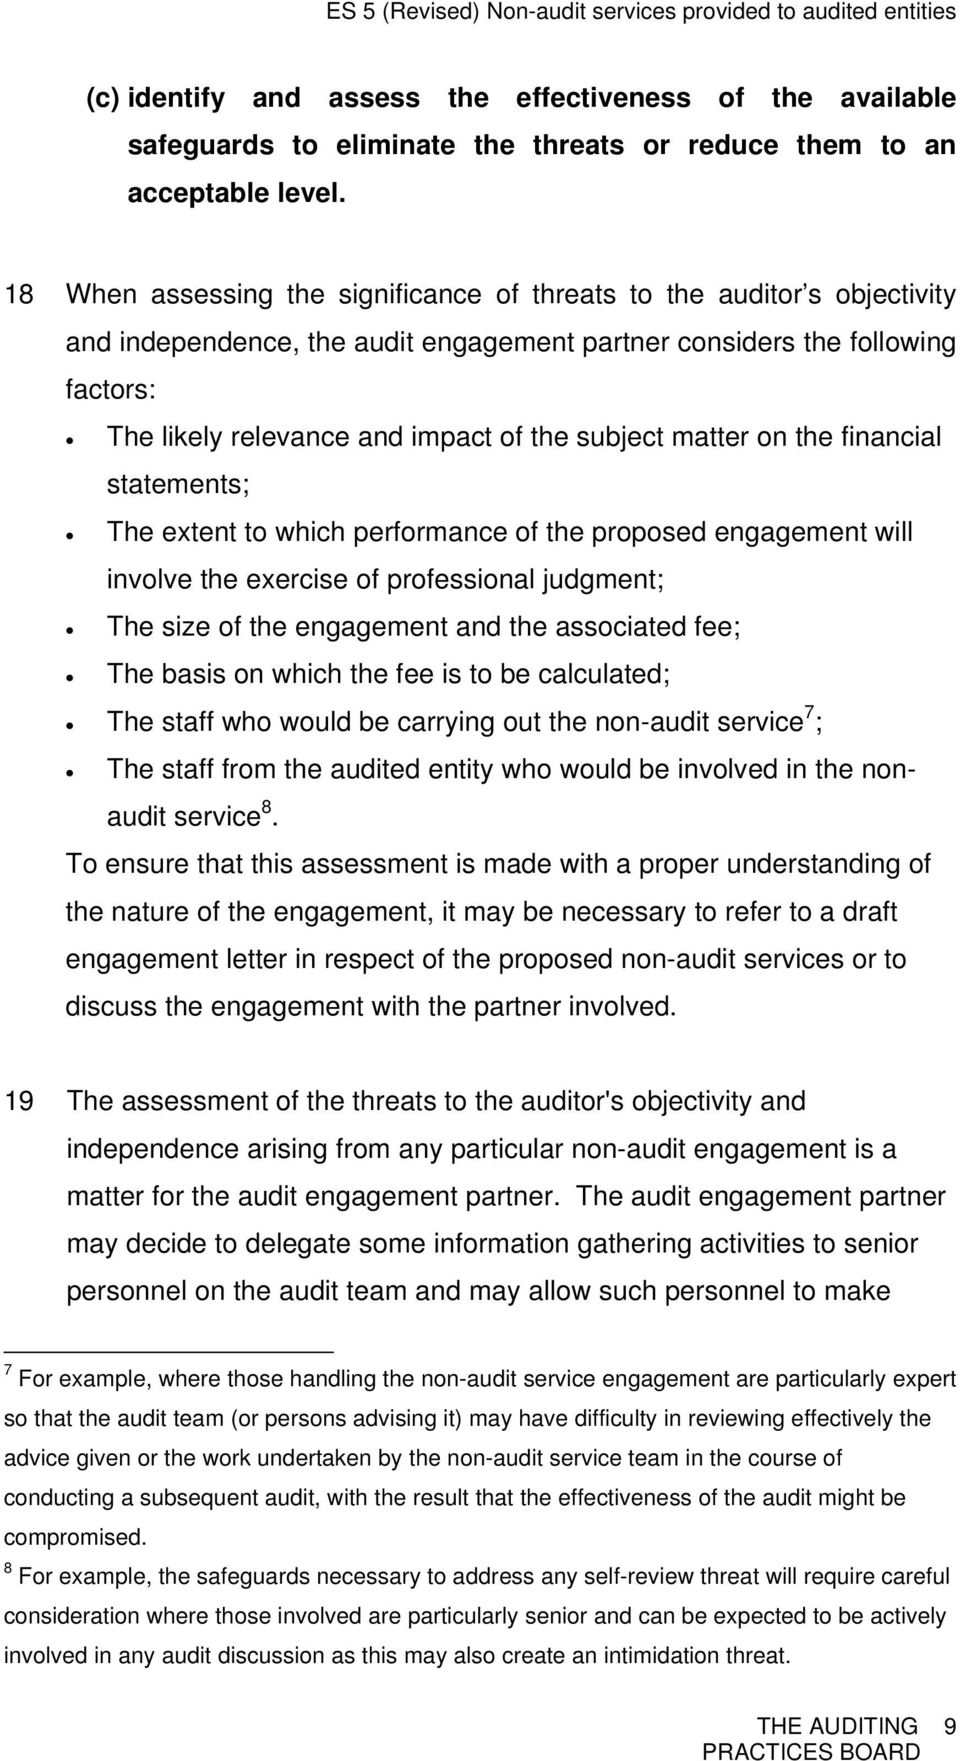 subject matter on the financial statements; The extent to which performance of the proposed engagement will involve the exercise of professional judgment; The size of the engagement and the